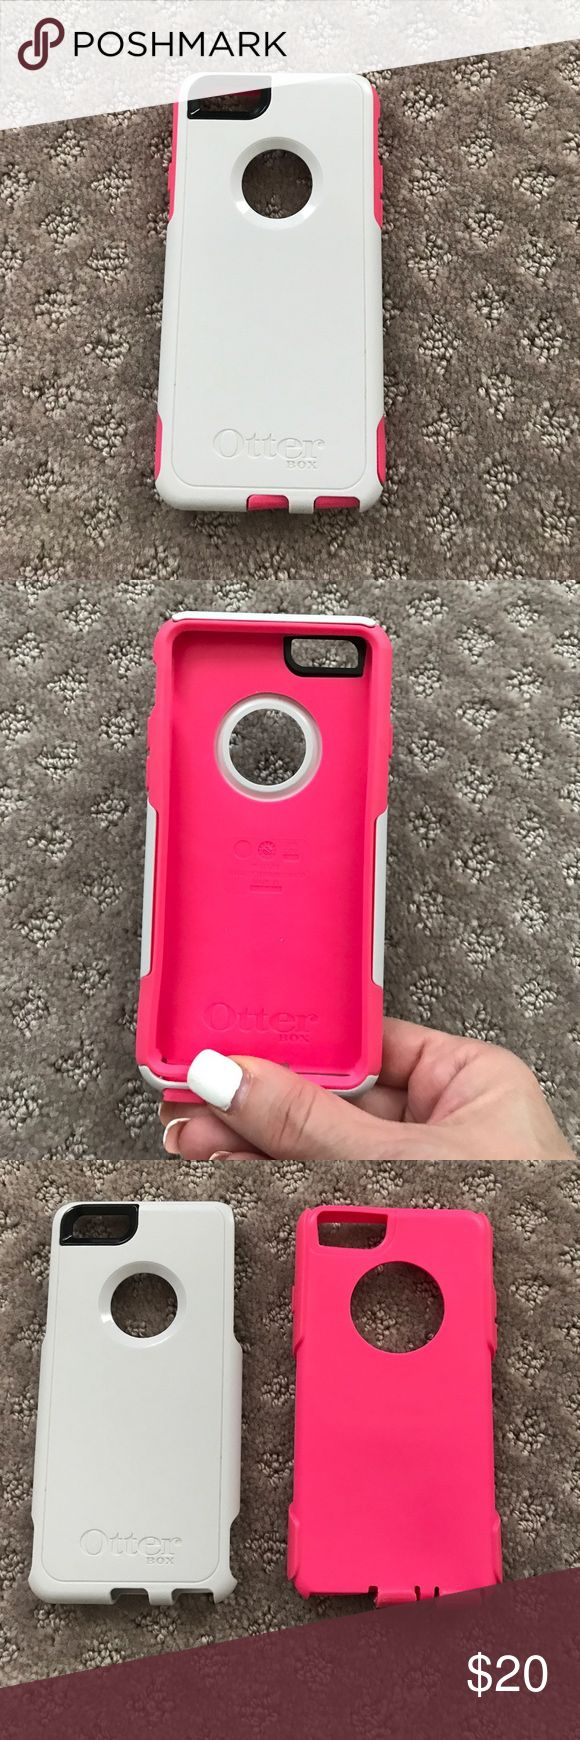 OTTER BOX phone case 6/6's Hot pink/white for i phone 6/6's (thinner otter box) great condition!! OTTER BOX Accessories Phone Cases